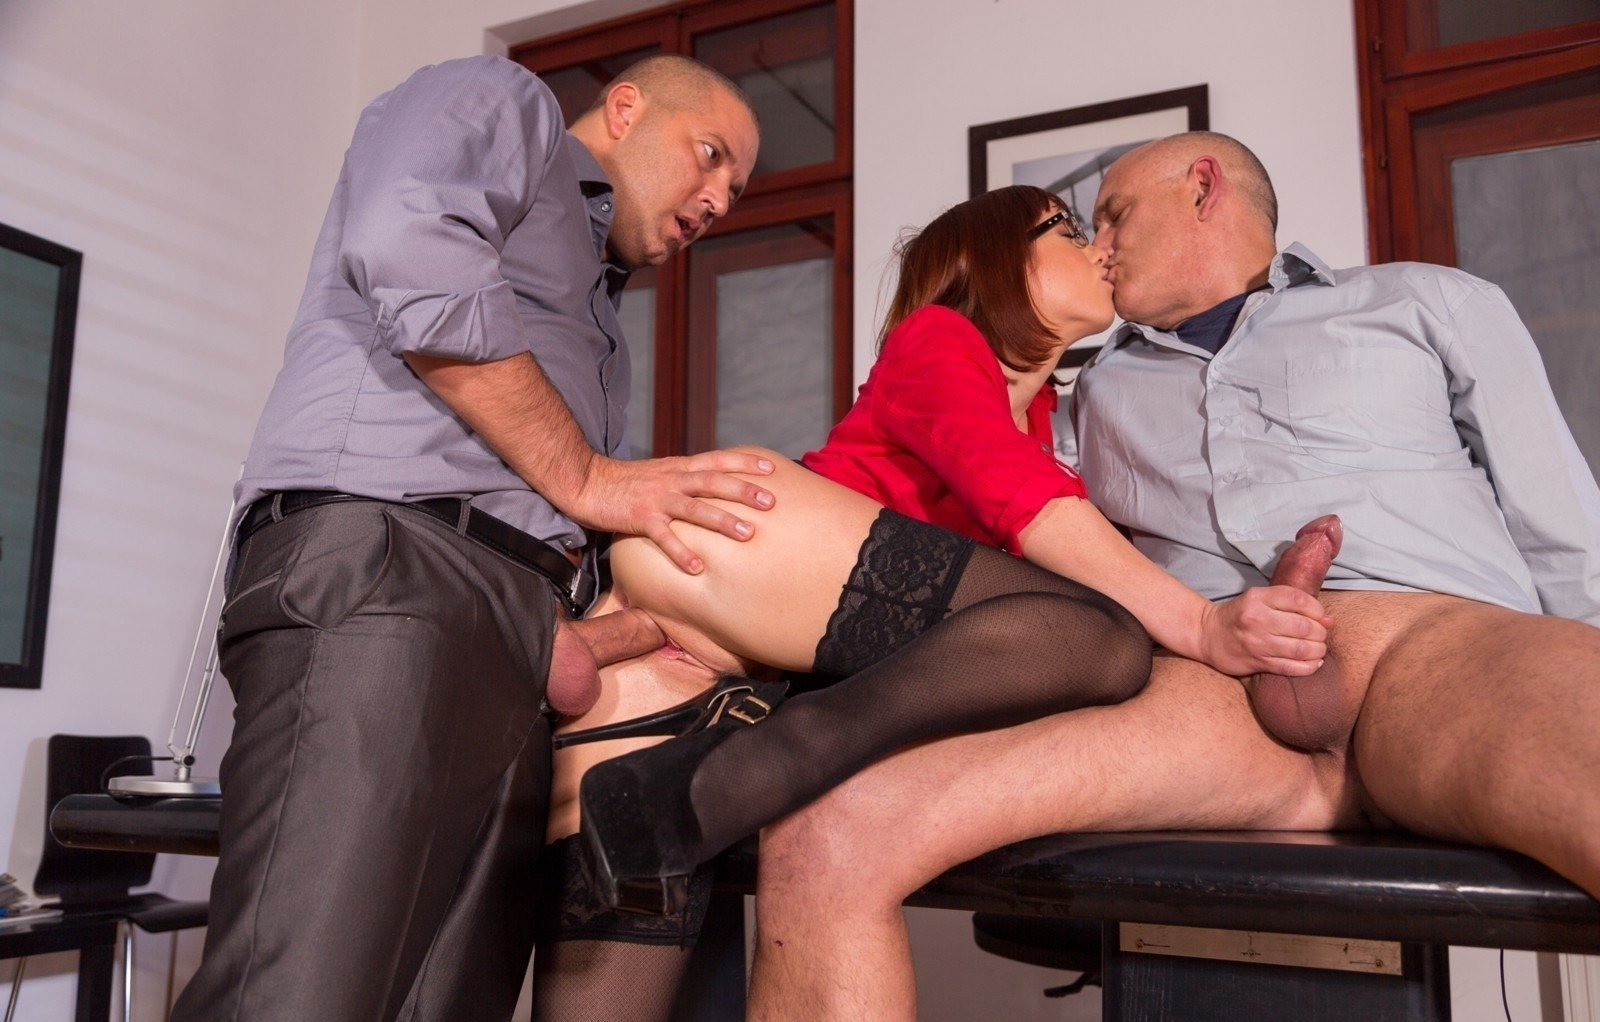 German office slut anal abuse free sex pics